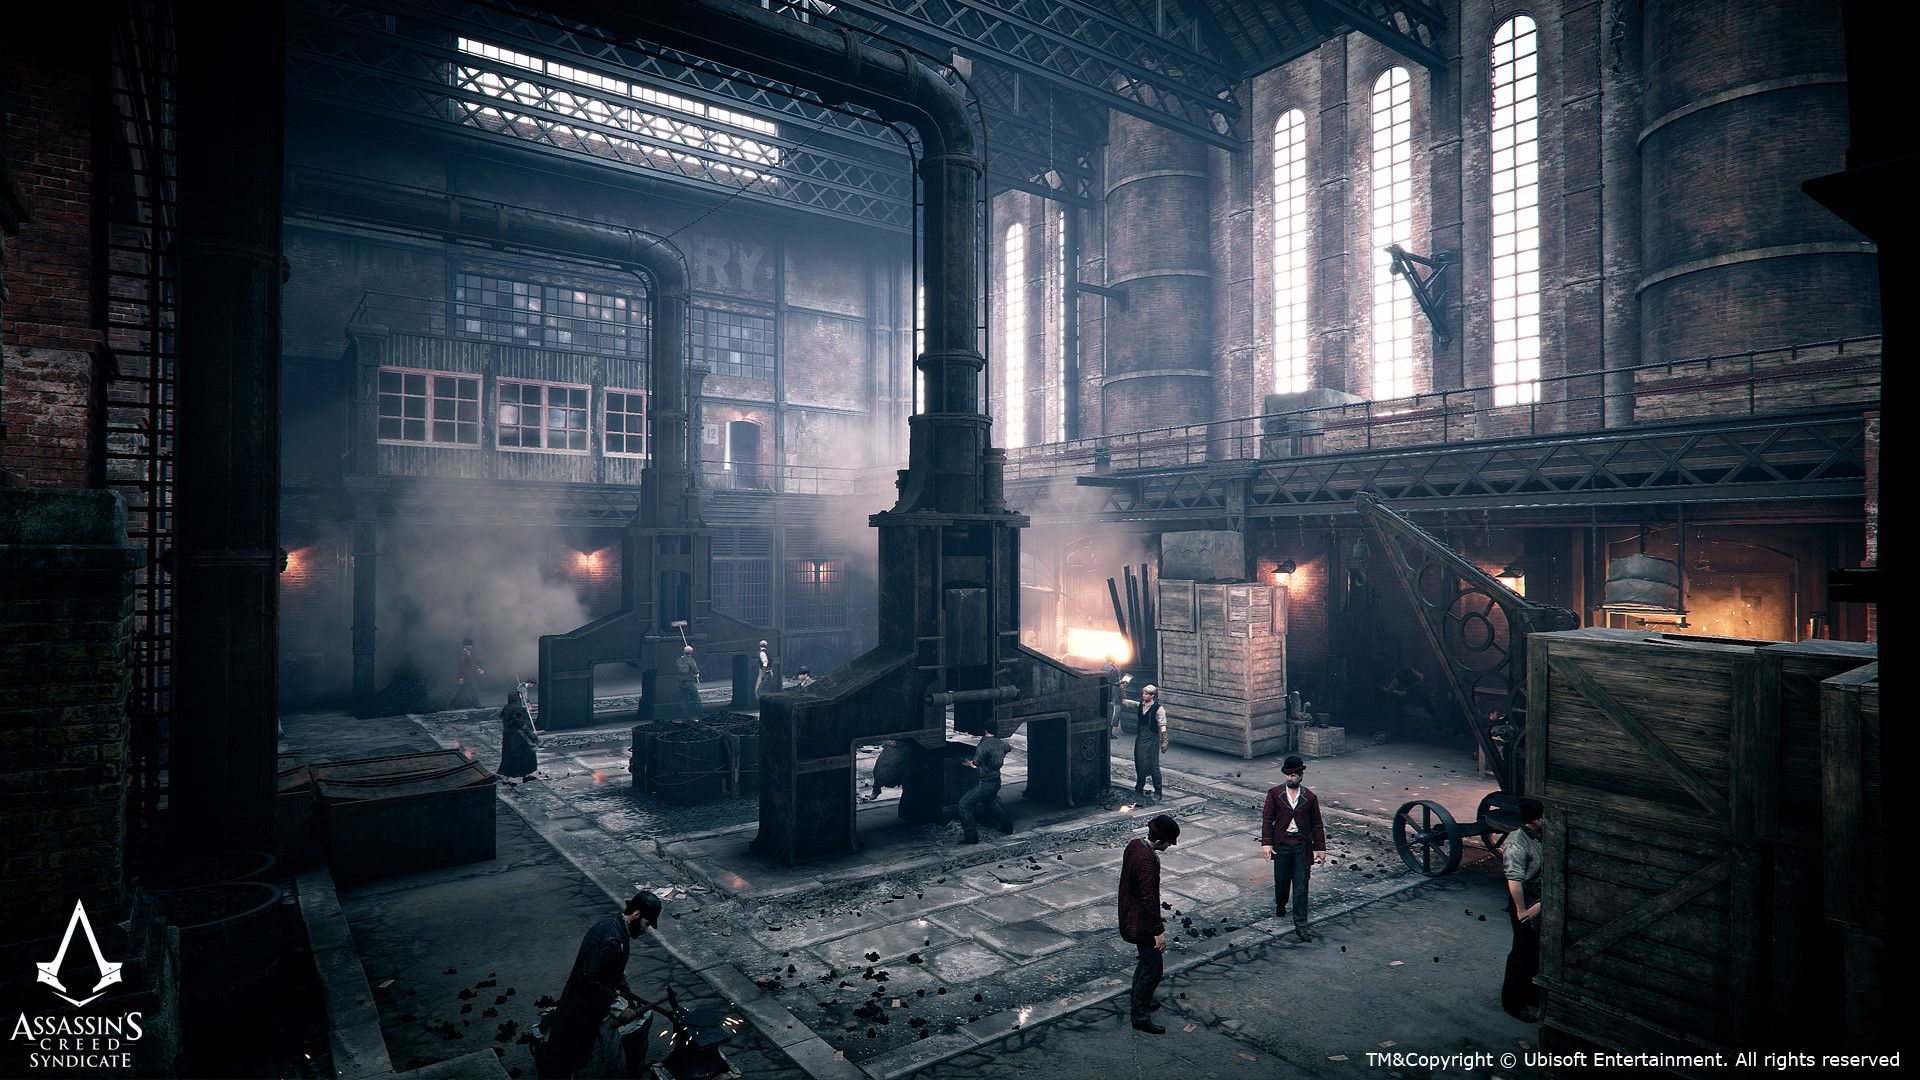 This Is The Industrial Architecture Kit For Assassins Creed